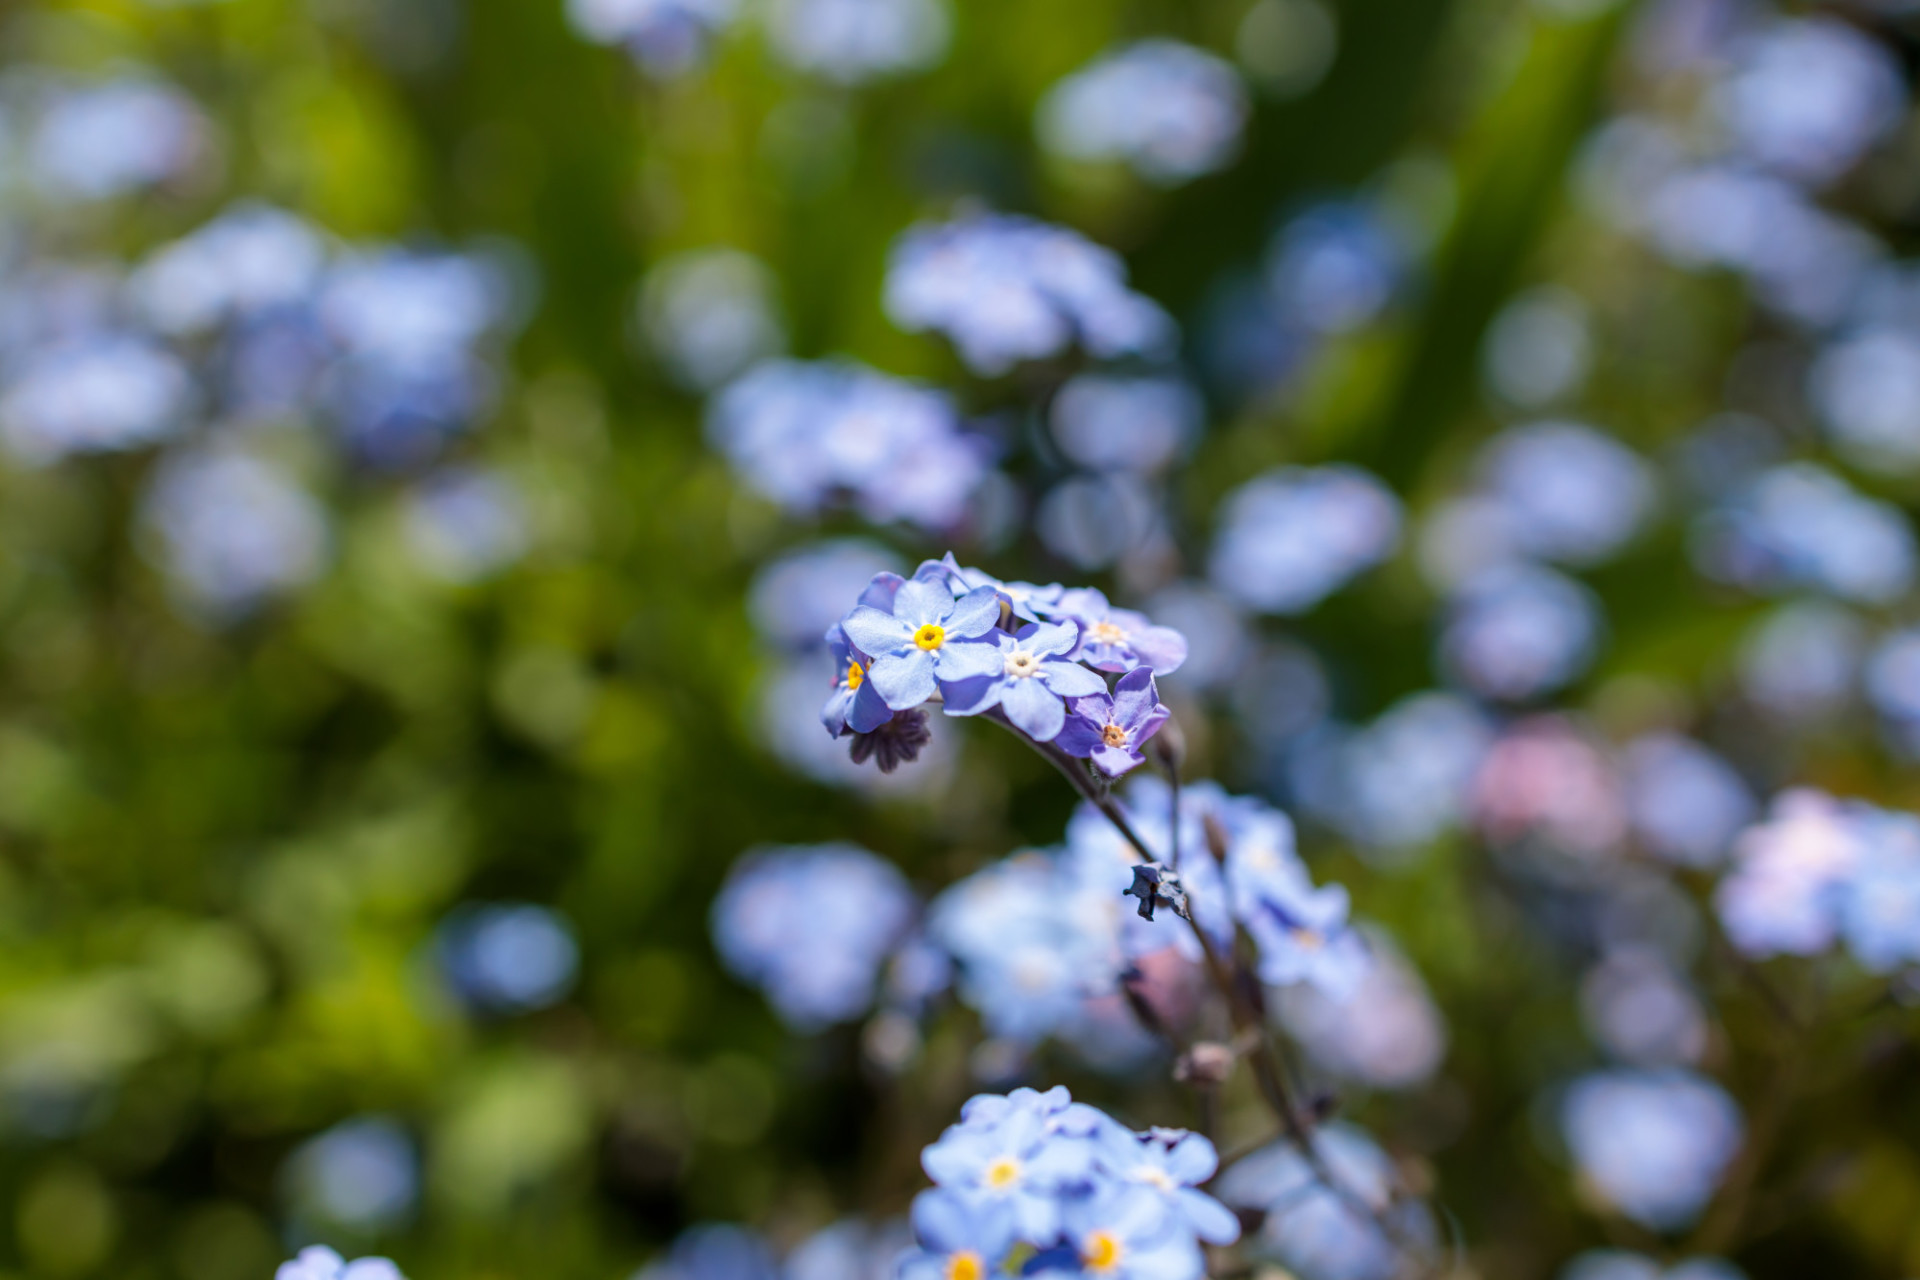 Blooming forget-me-nots